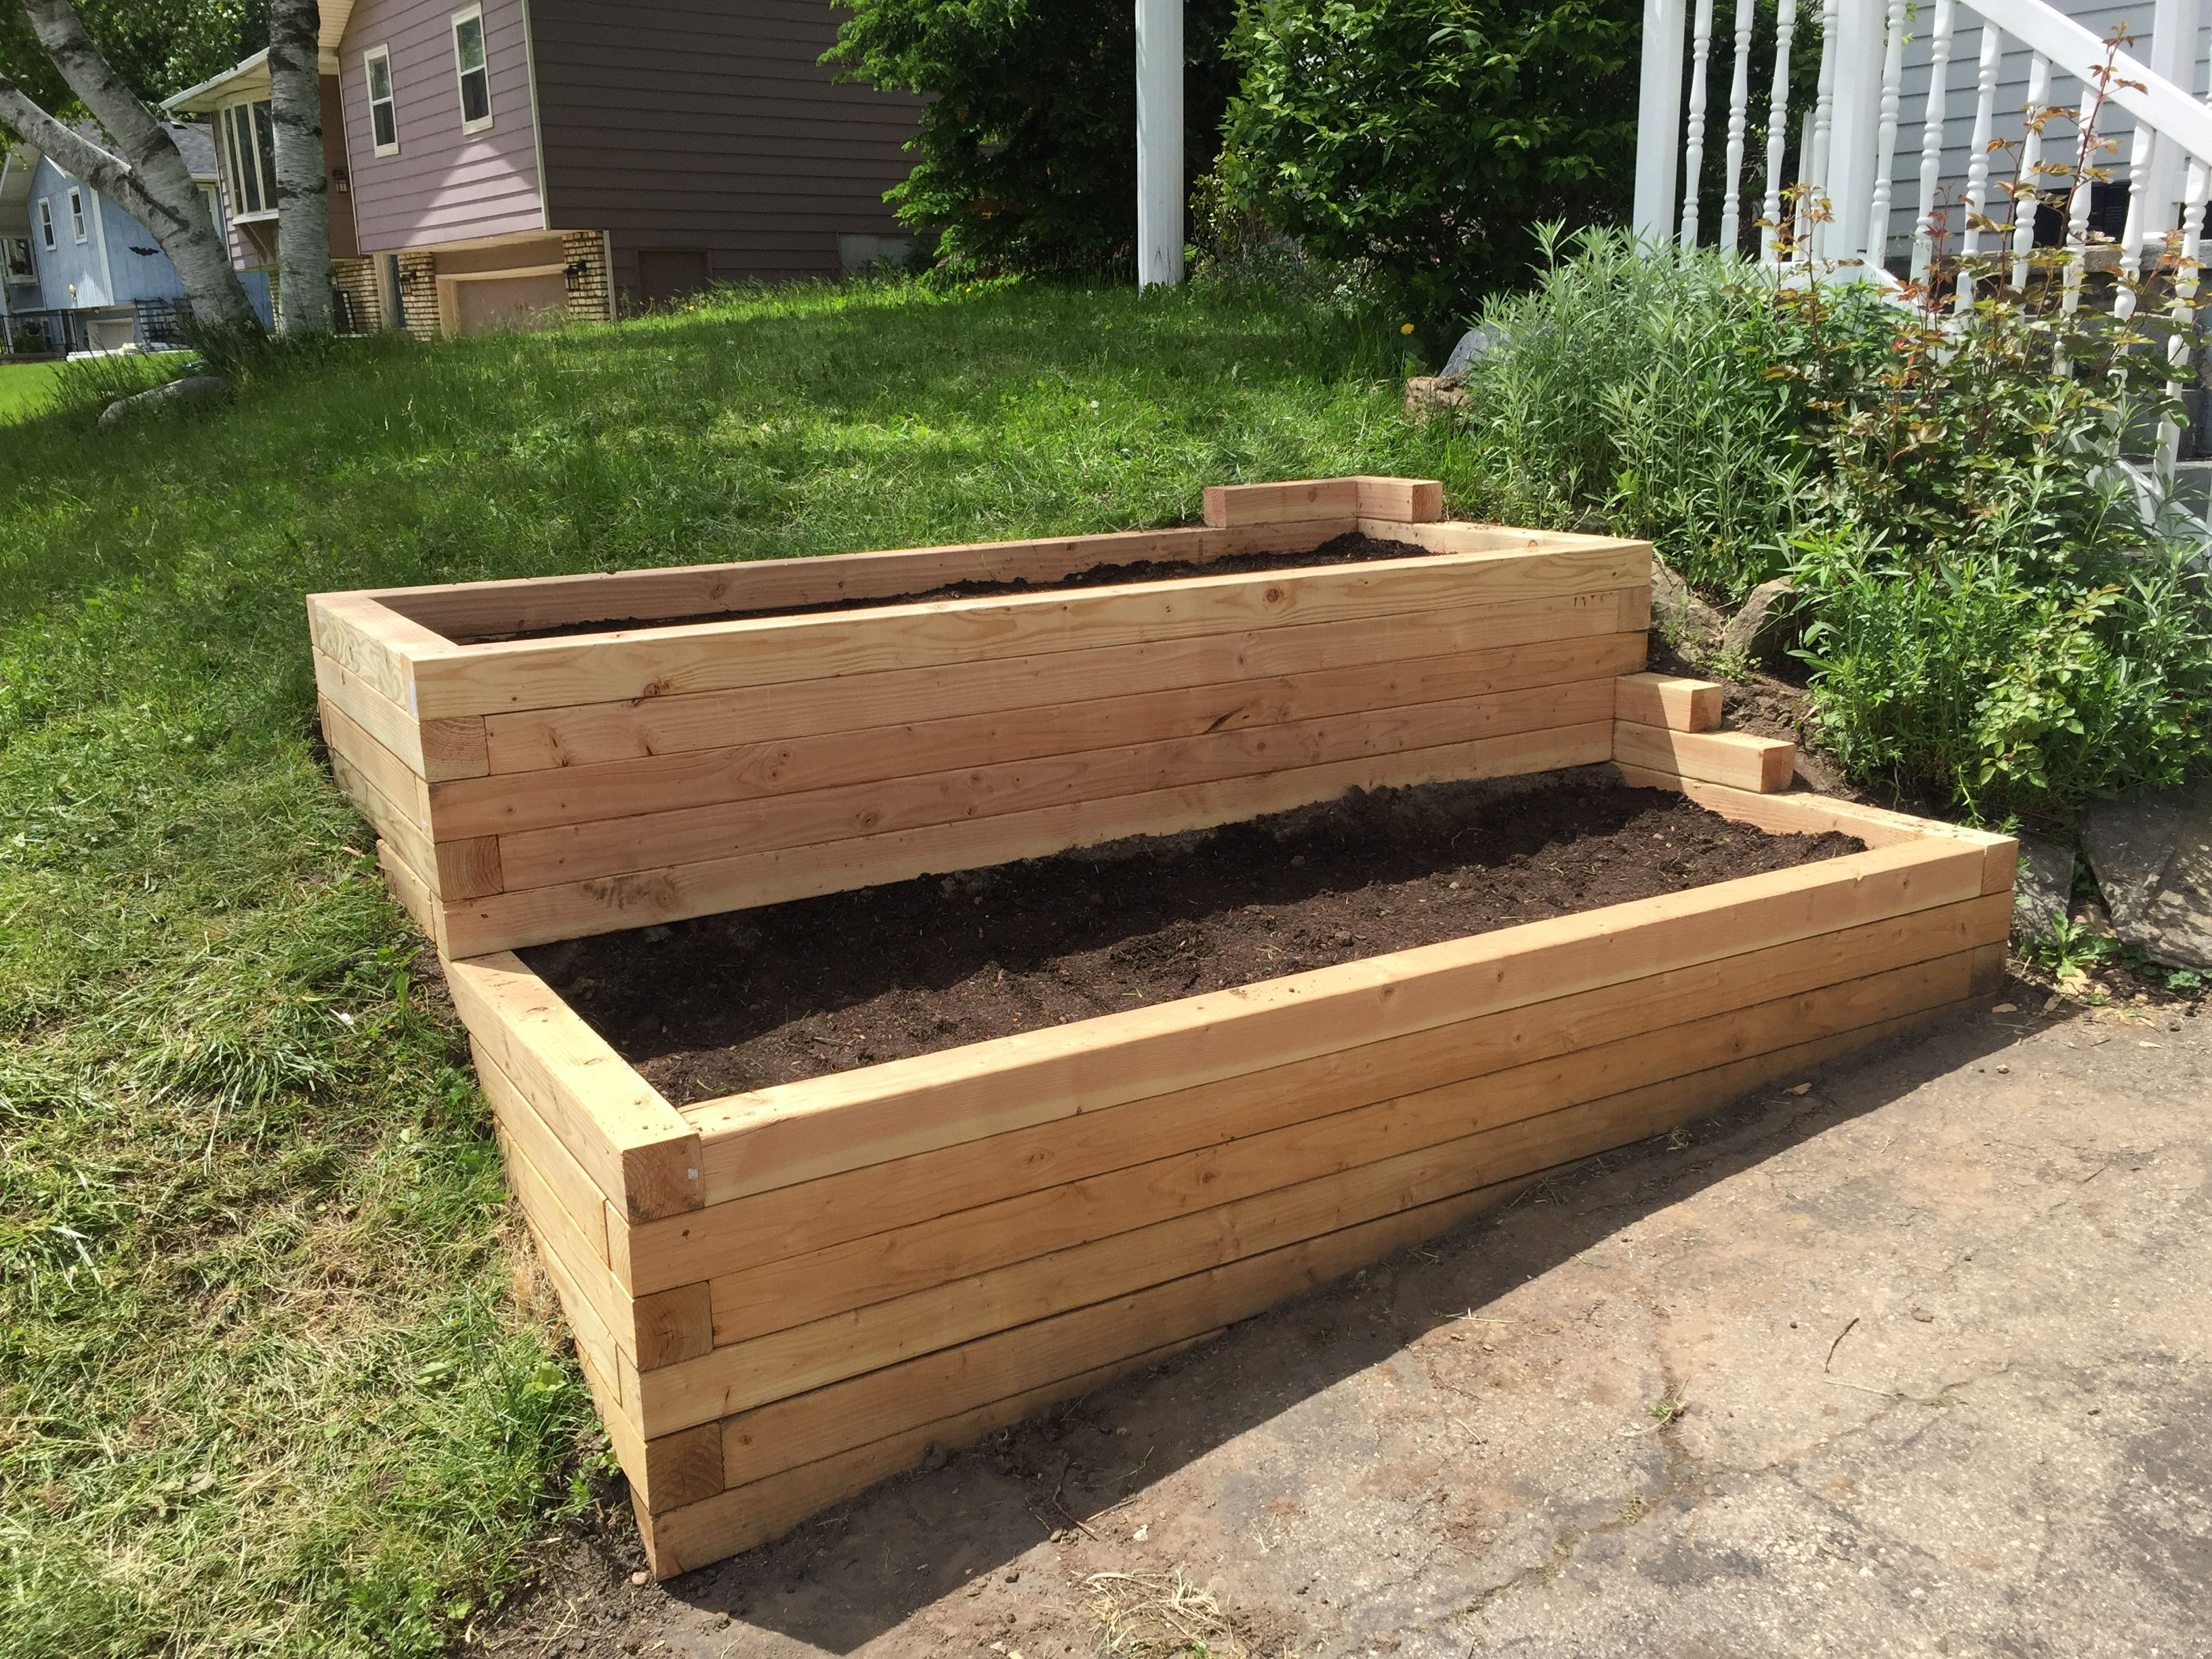 Terraced Garden Beds Built Into A Hill 8 4x4 Douglas Fir